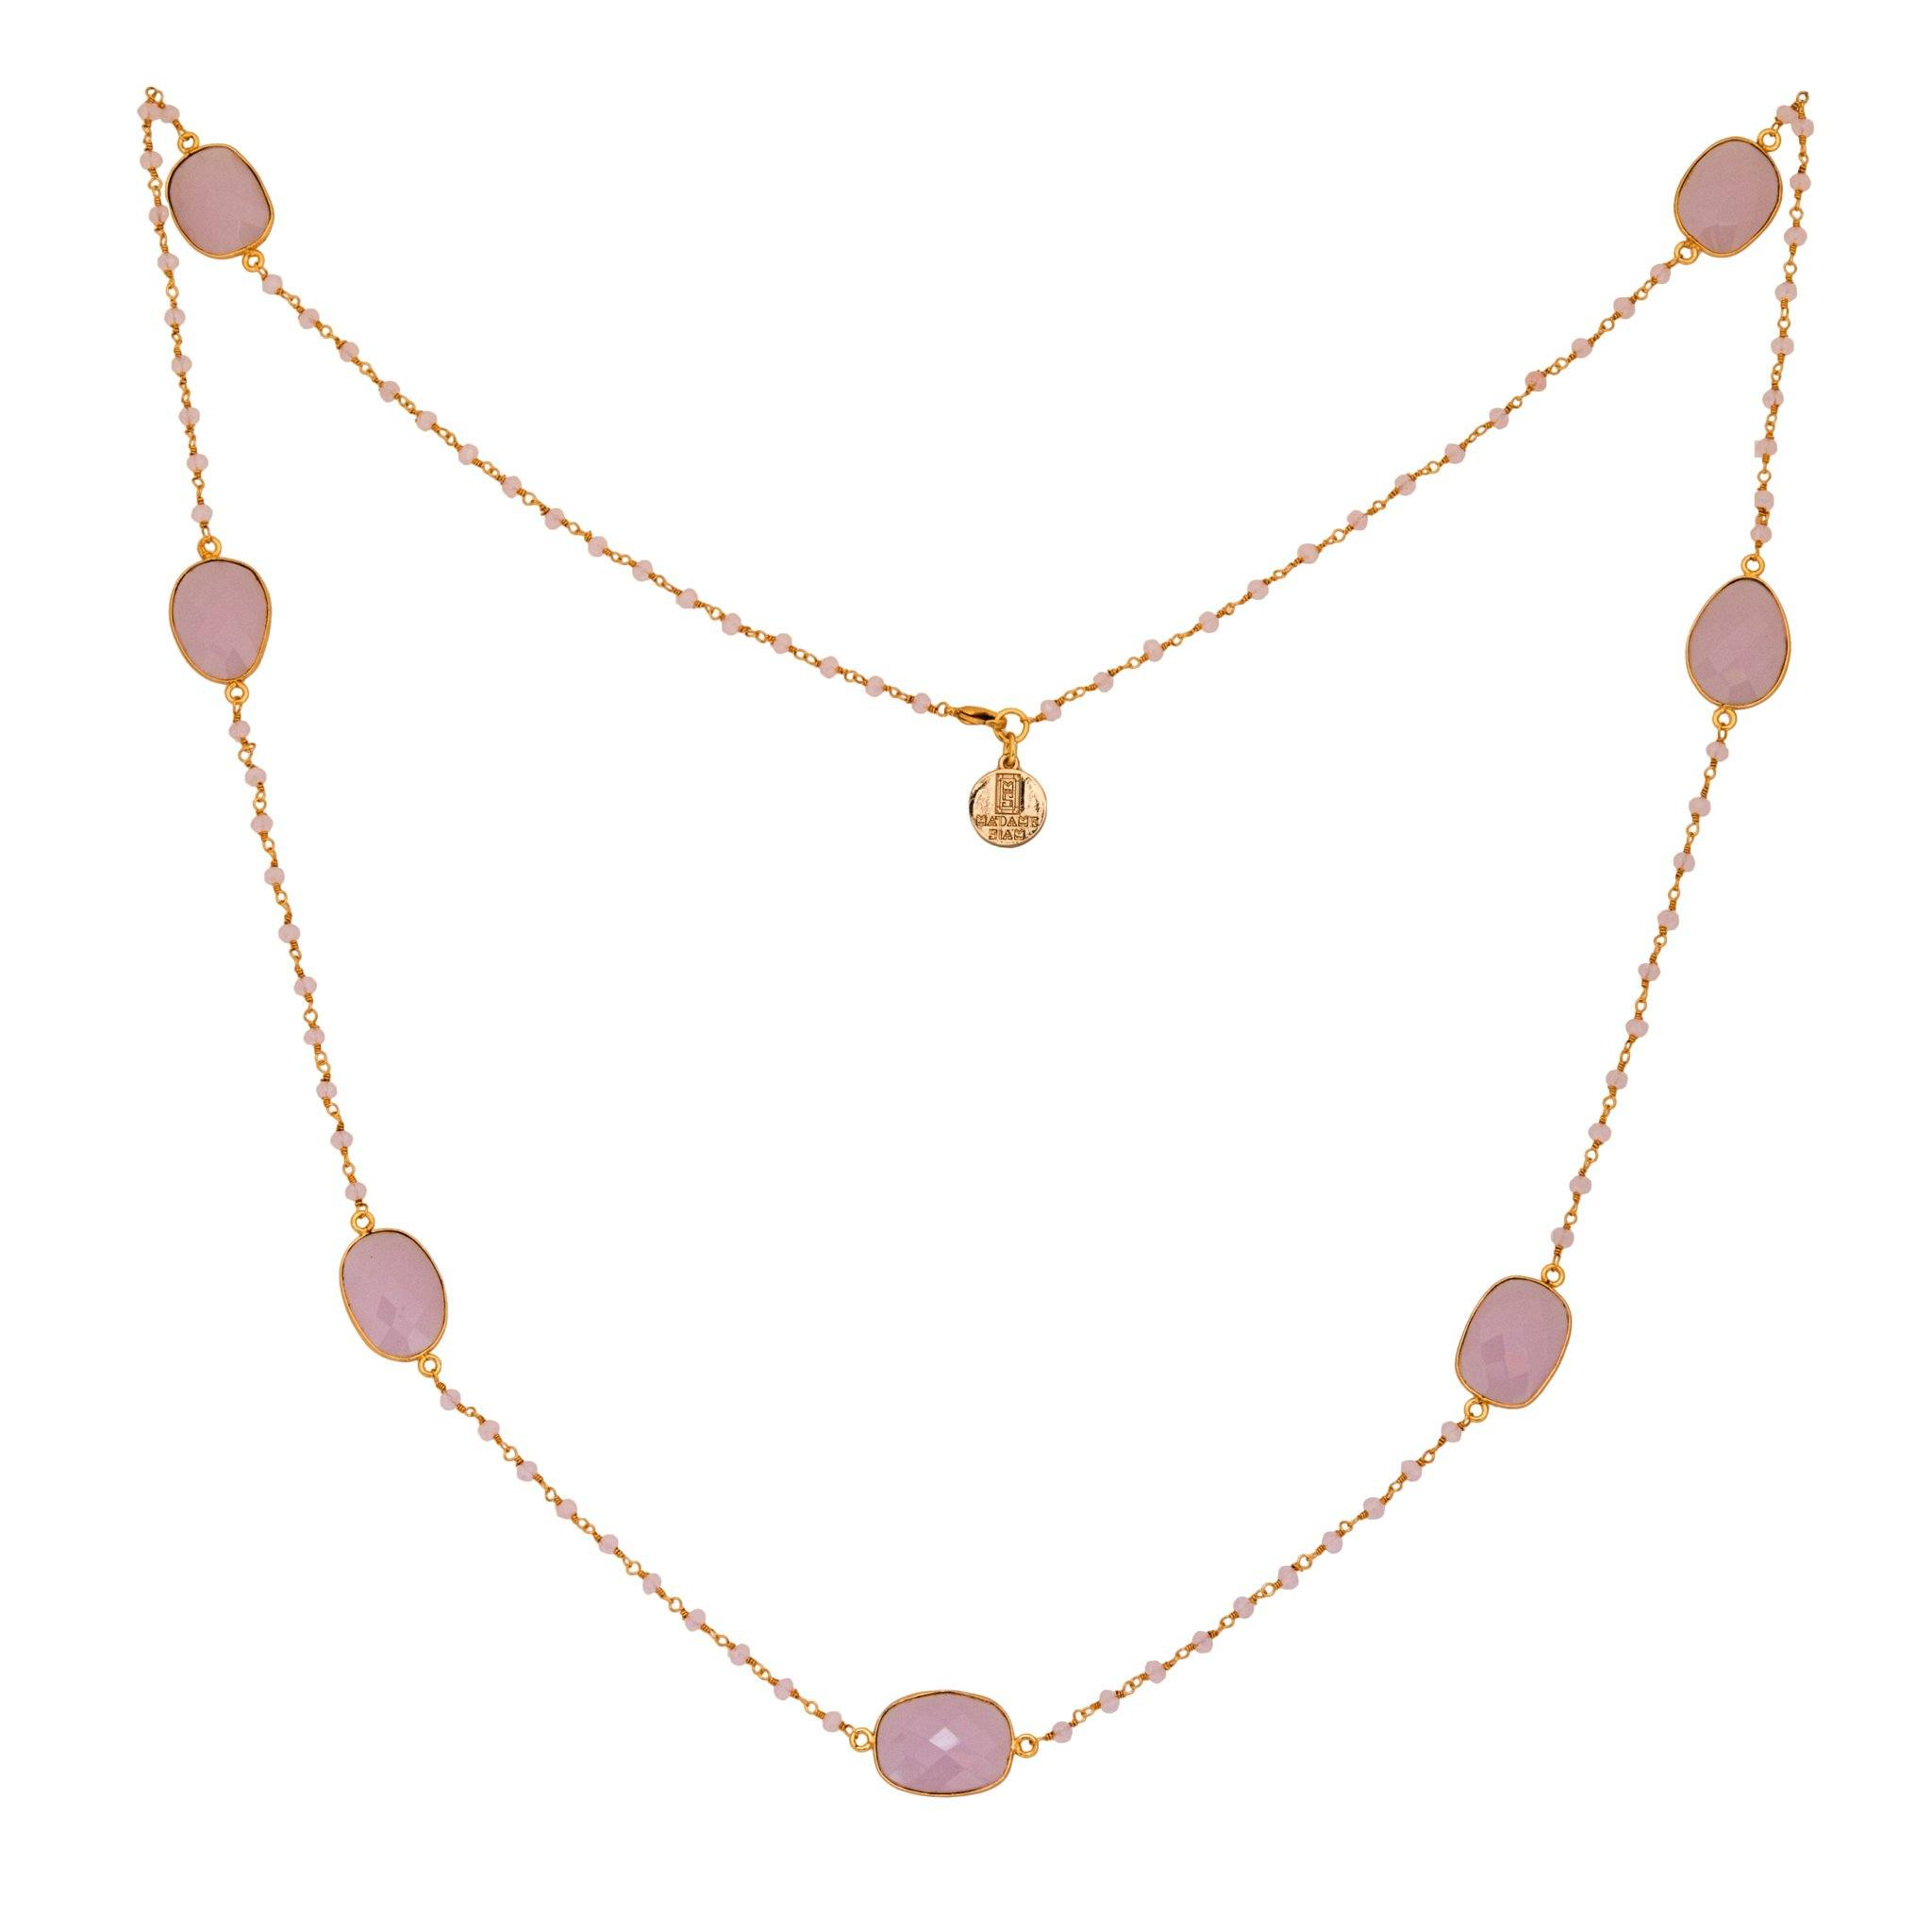 MOUSSON PERLEE rose quartz station necklace with rosary chain